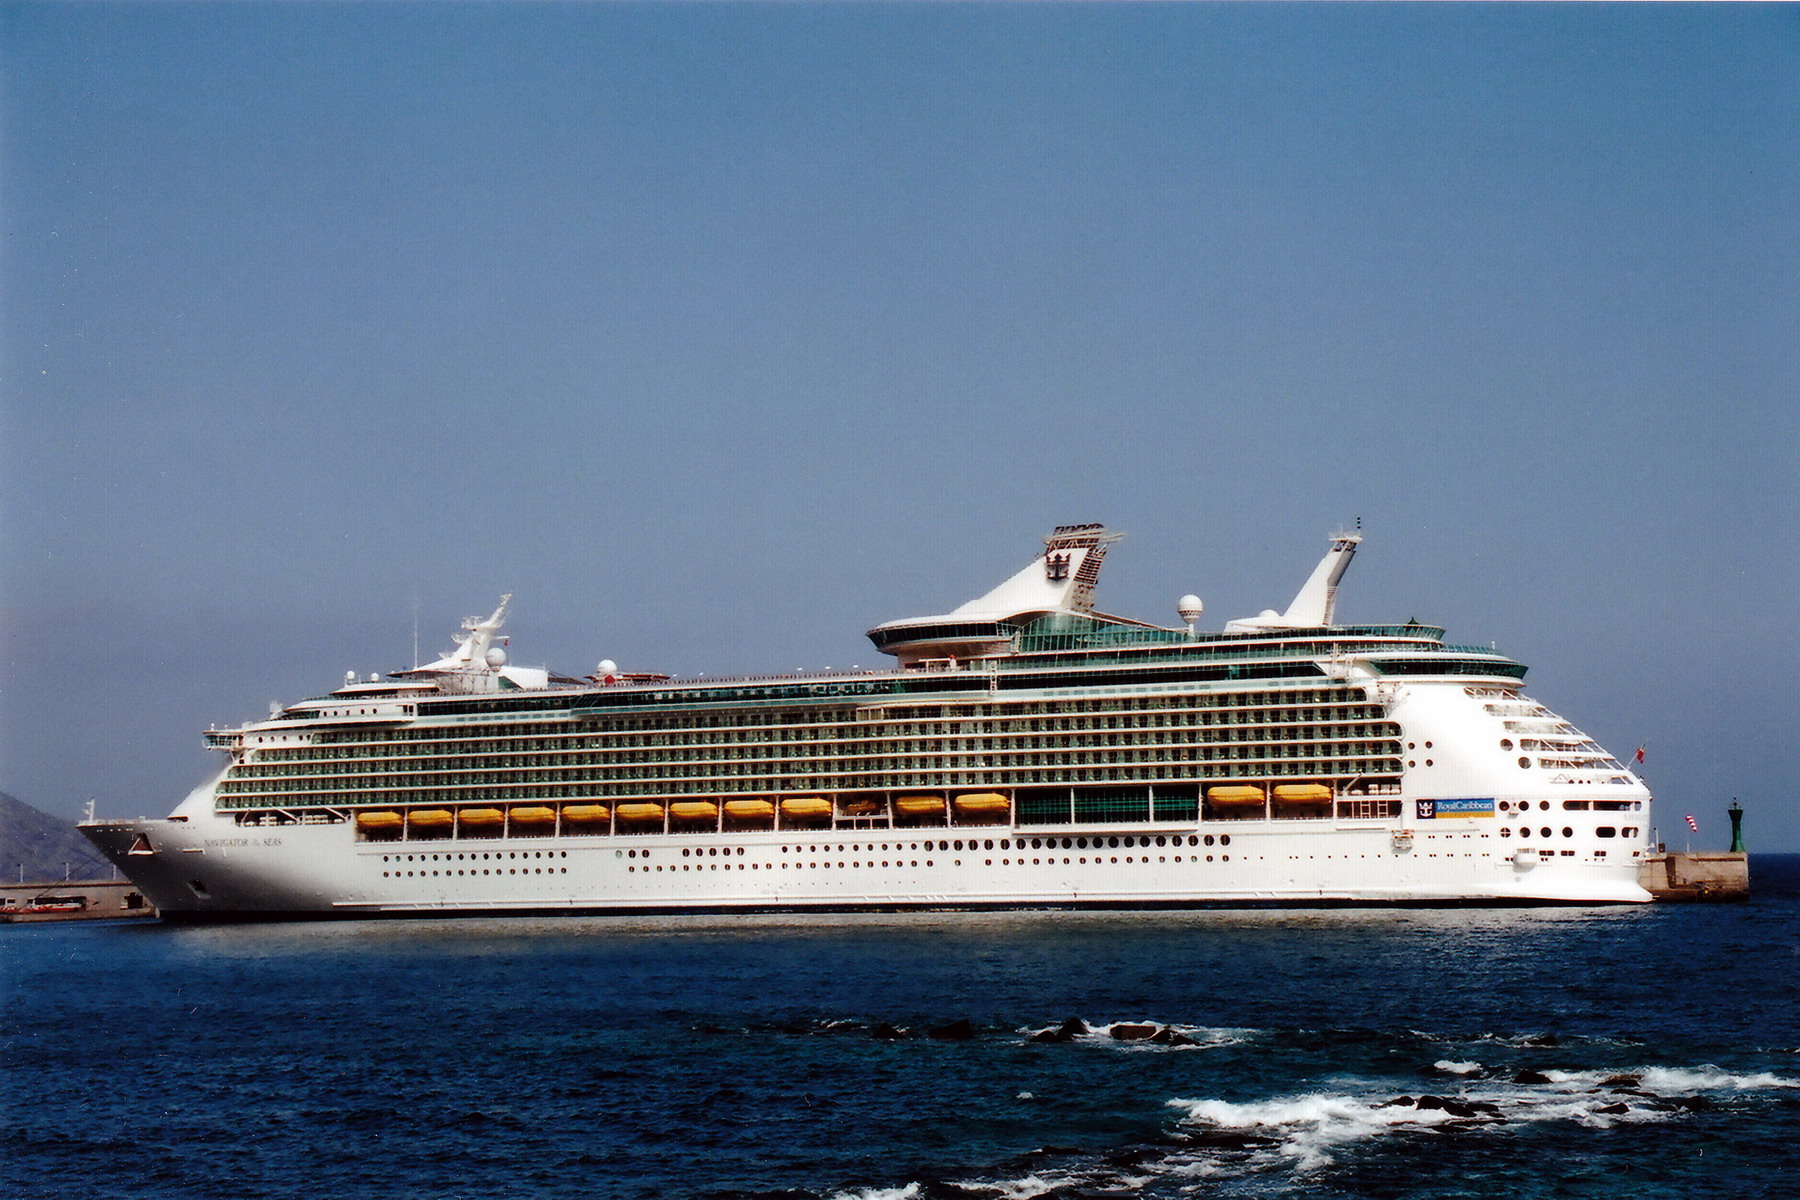 NAVIGATOR_OF_THE_SEAS_9227508__©Noray_(8